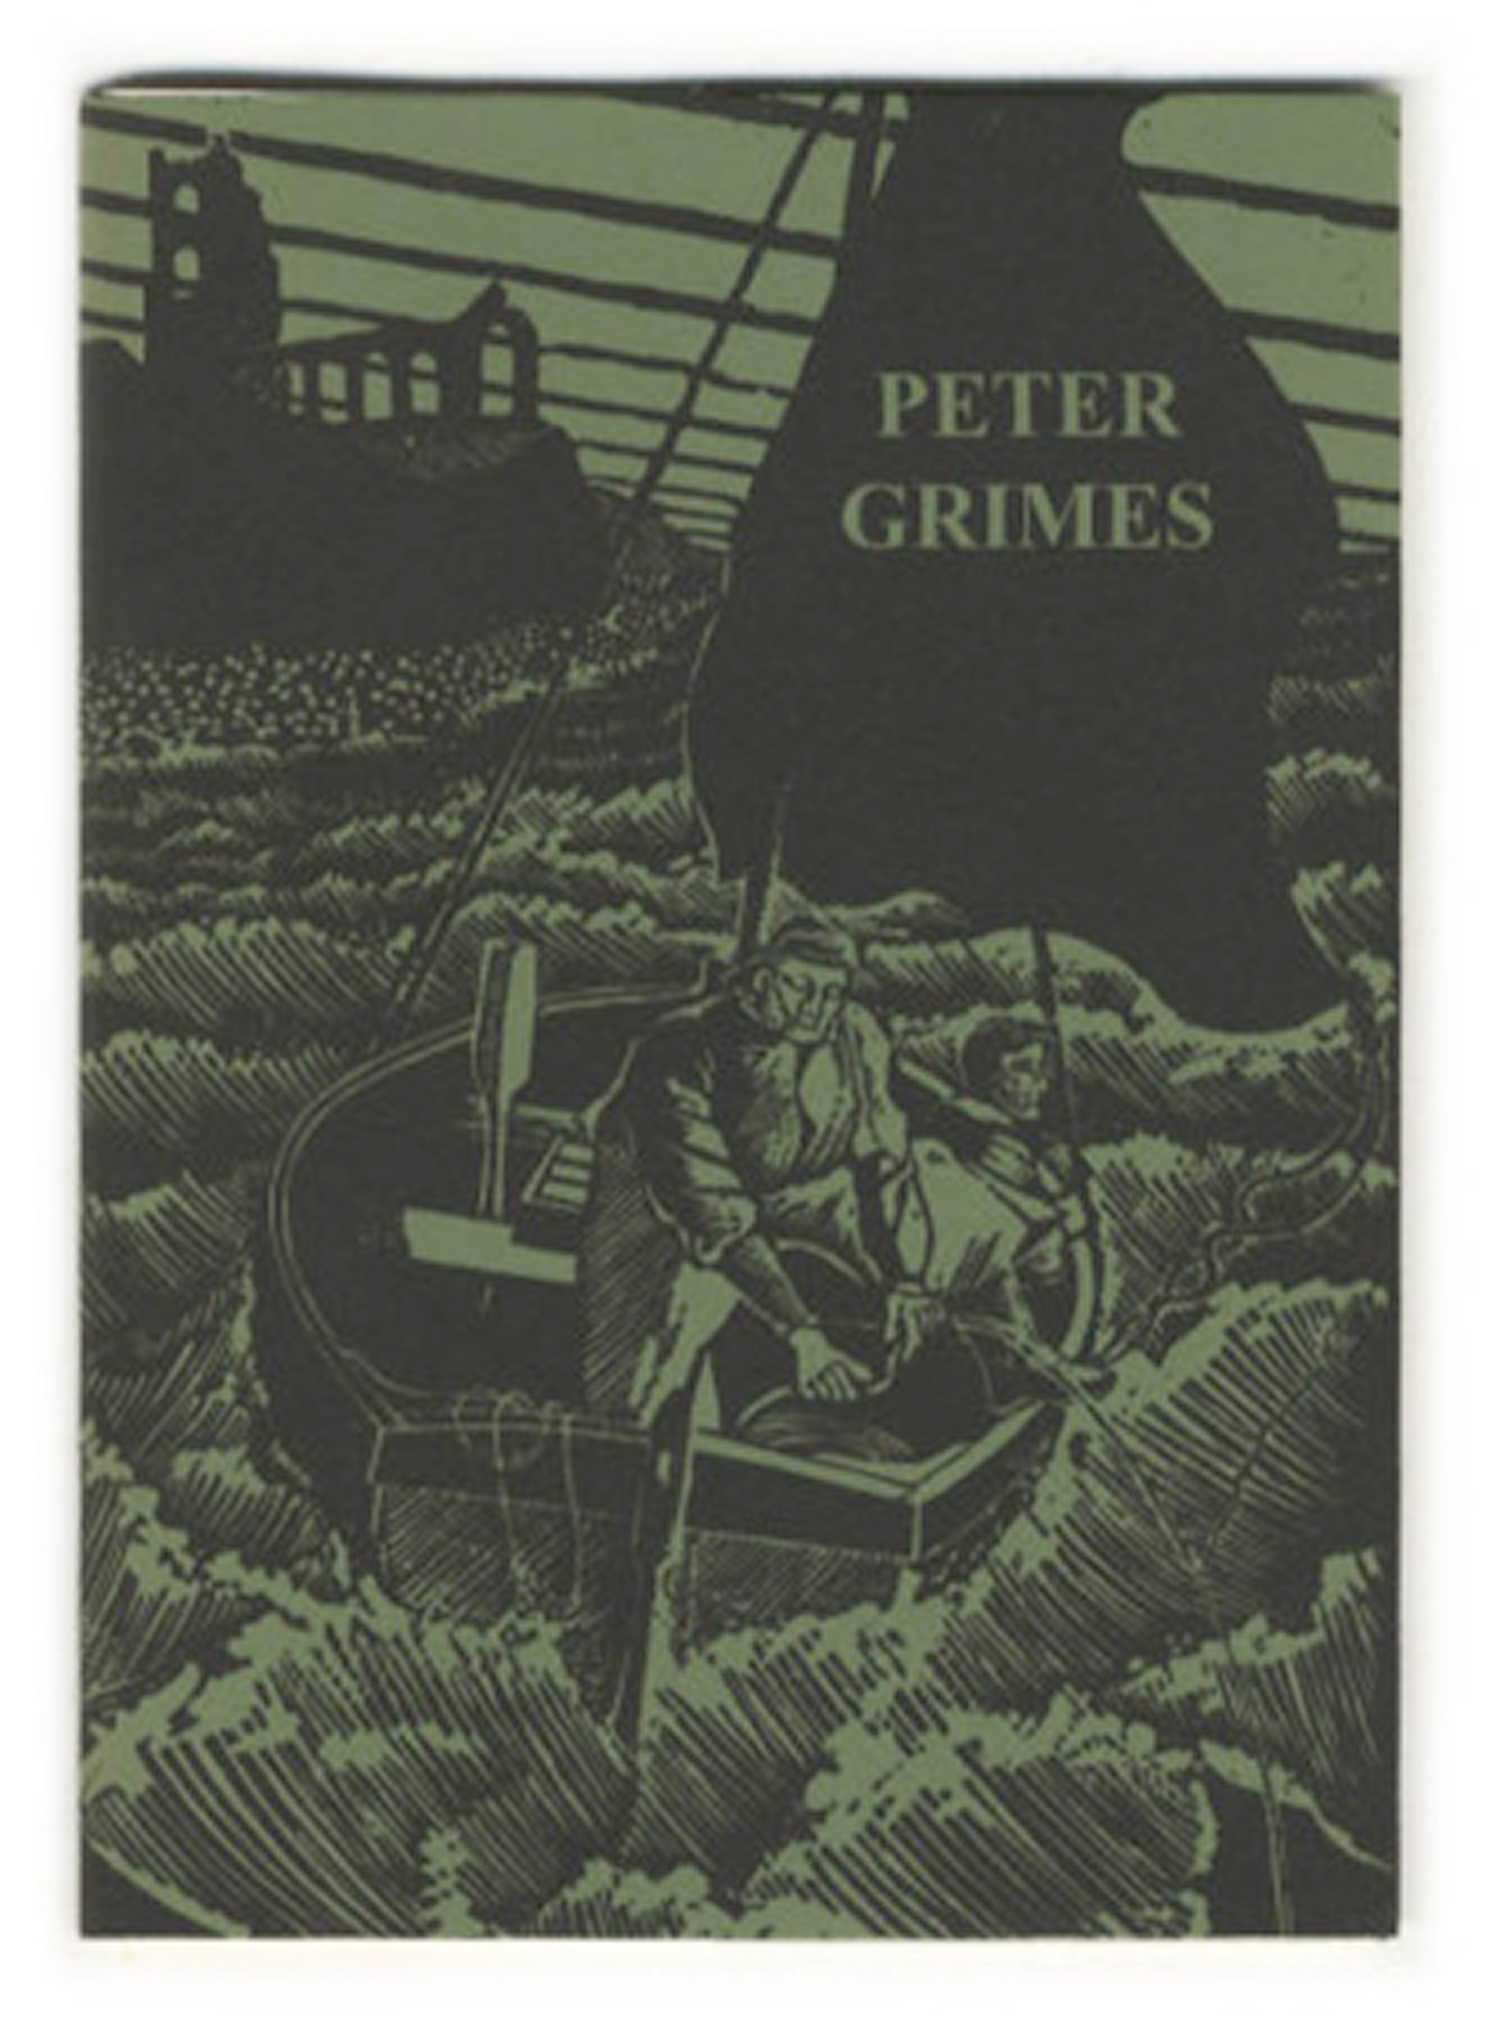 Peter Grimes by James Dodds